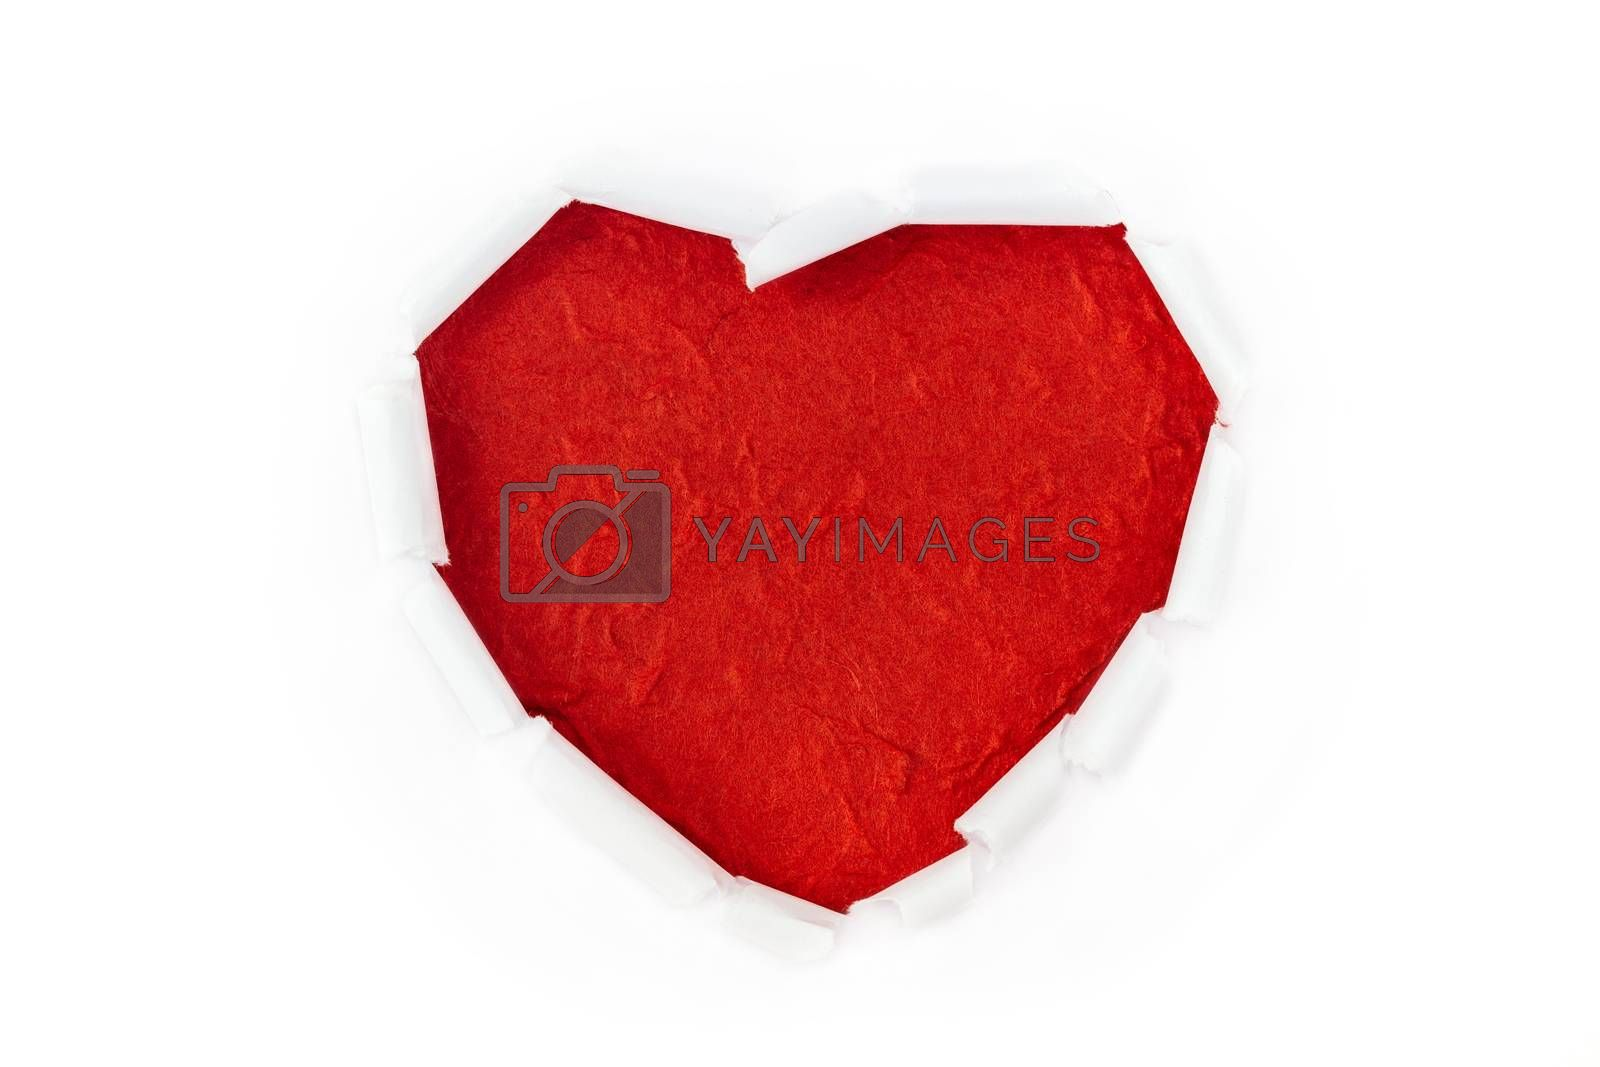 Royalty free image of heart love ripped on white background by blackzheep